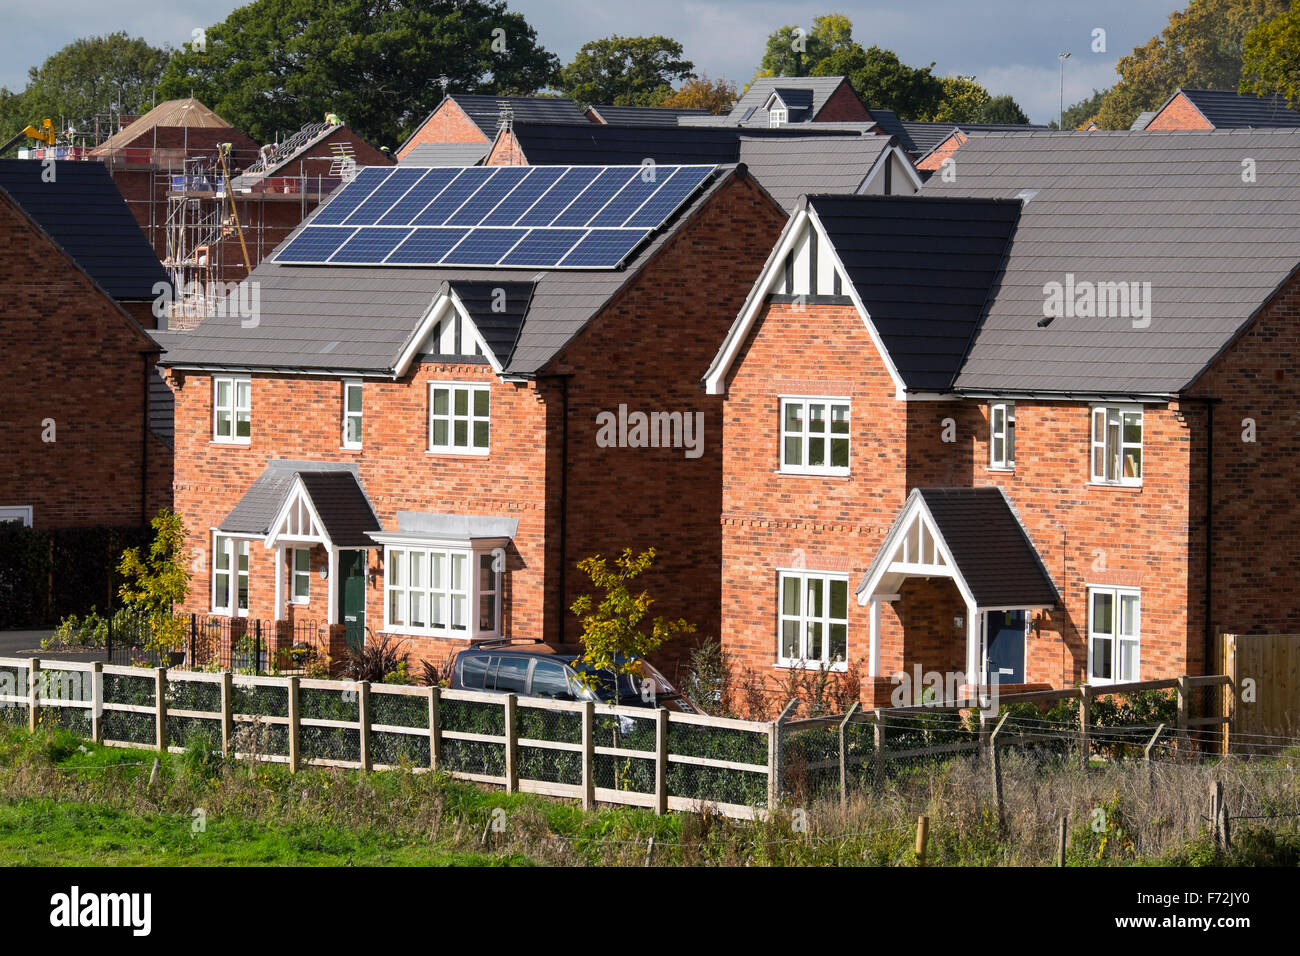 A detached house in Ellesmere, Shropshire, fitted with photovoltaic panels. - Stock Image